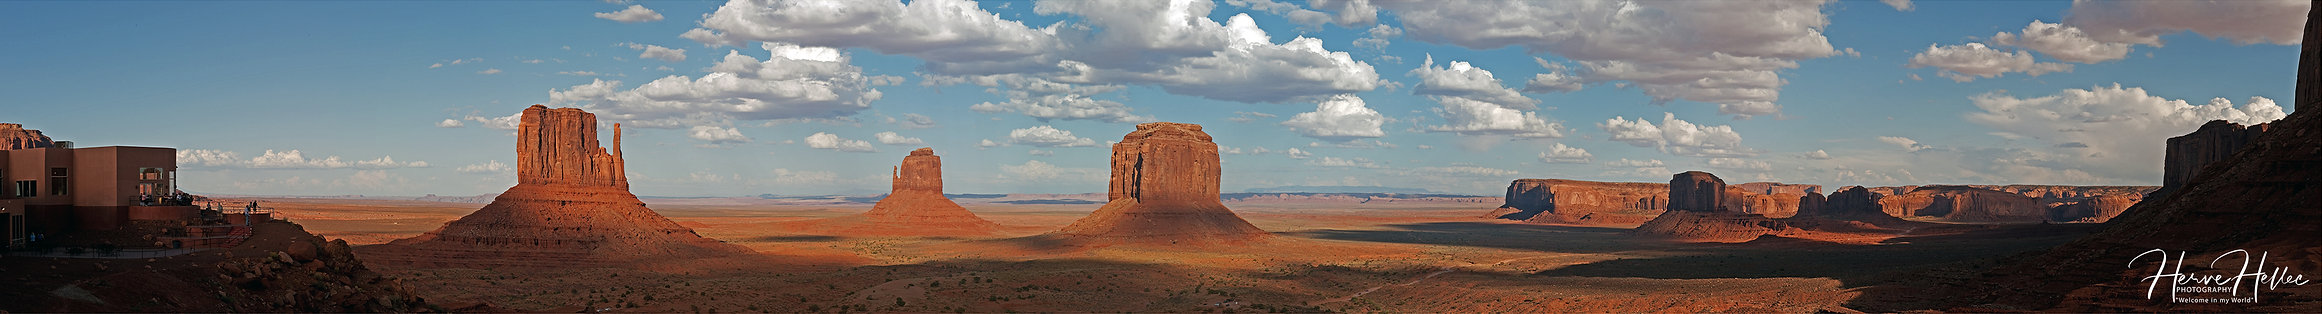 Monument Valley SIGNEE MOVA_0001.jpg